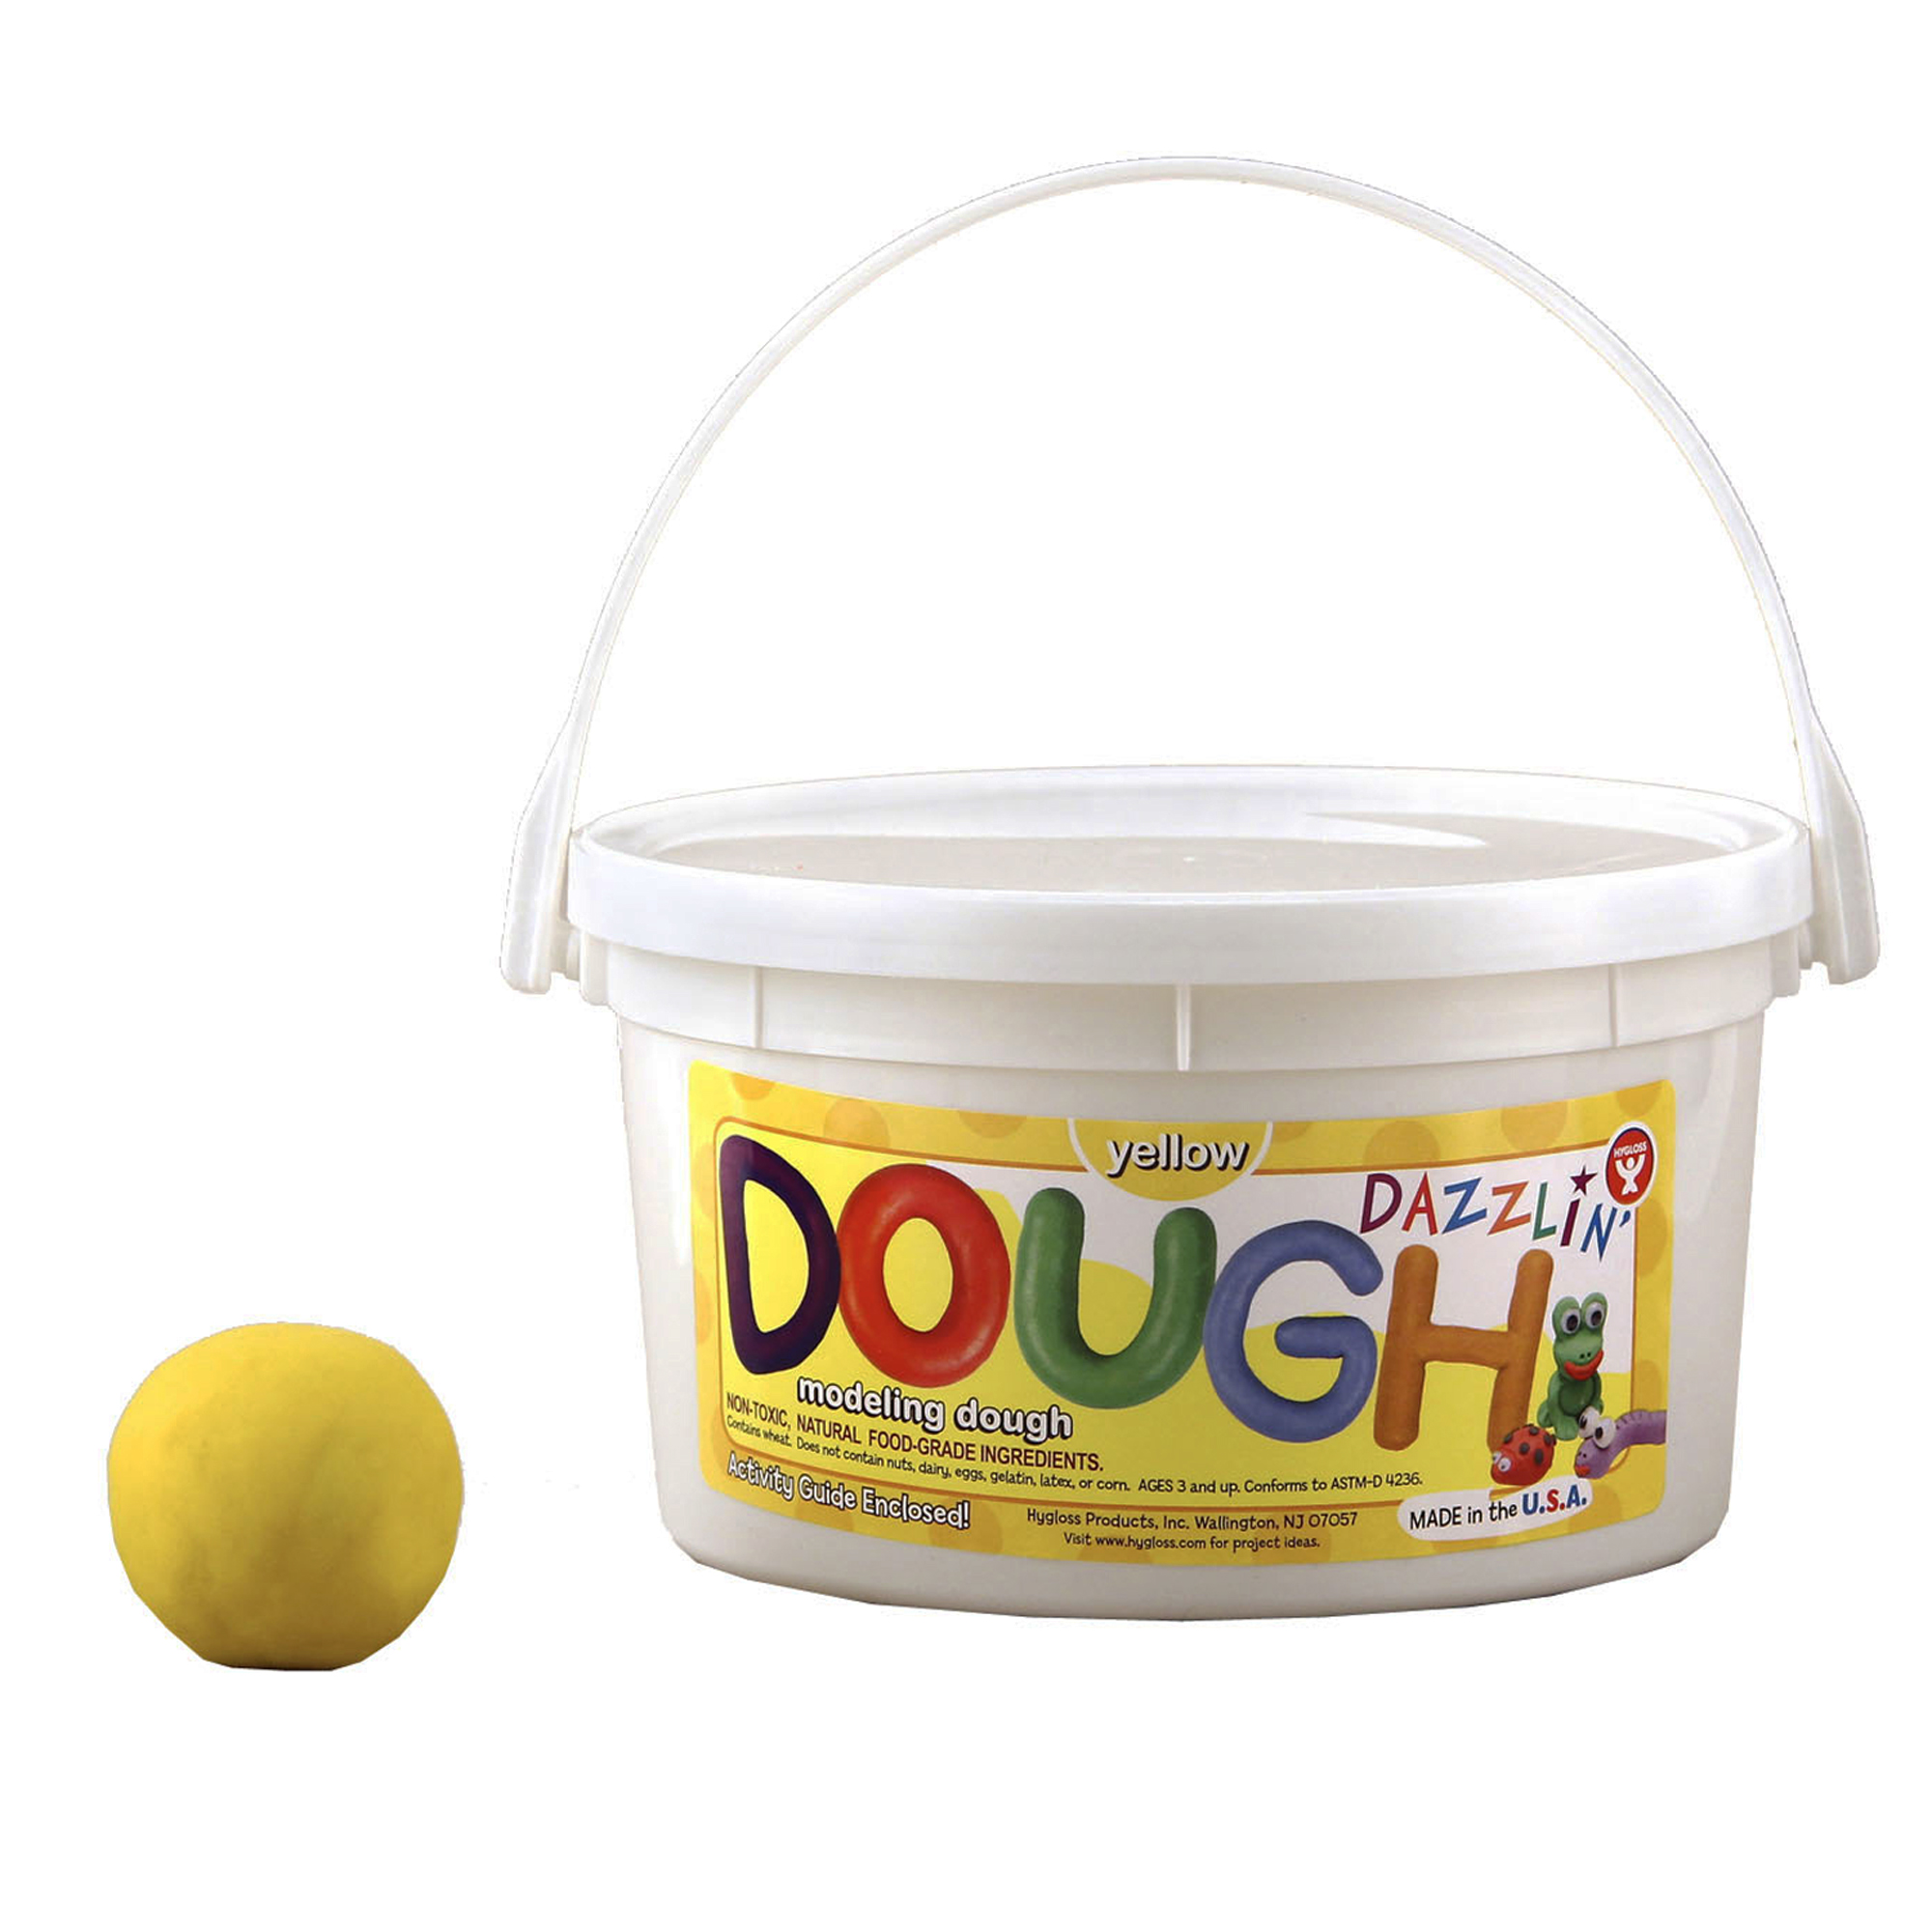 Dazzlin' Dough, Yellow, 3 lb. Tub, Pack of 3